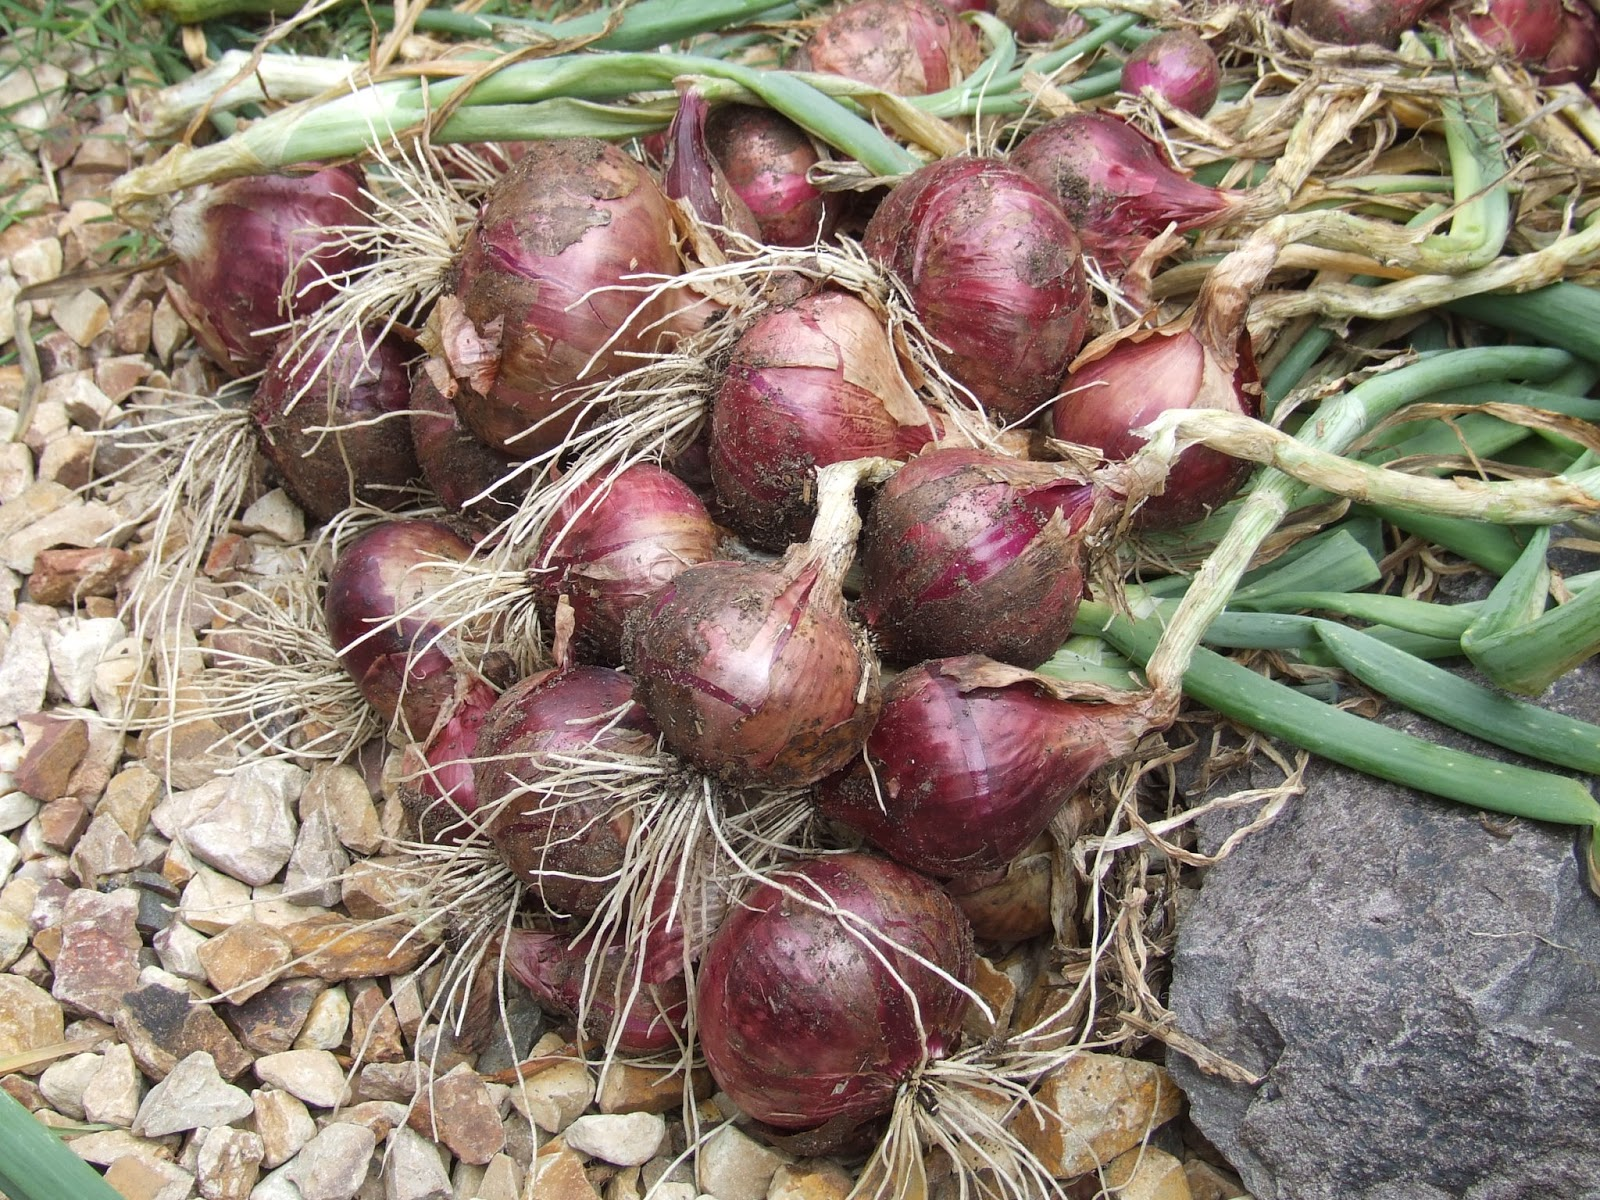 how to grow onions Familiar bulb onions are easy to cultivate as long as you plant varieties adapted to your climate, and you can expand your onion season by growing leeks, scallions, and other non-bulbing varieties.